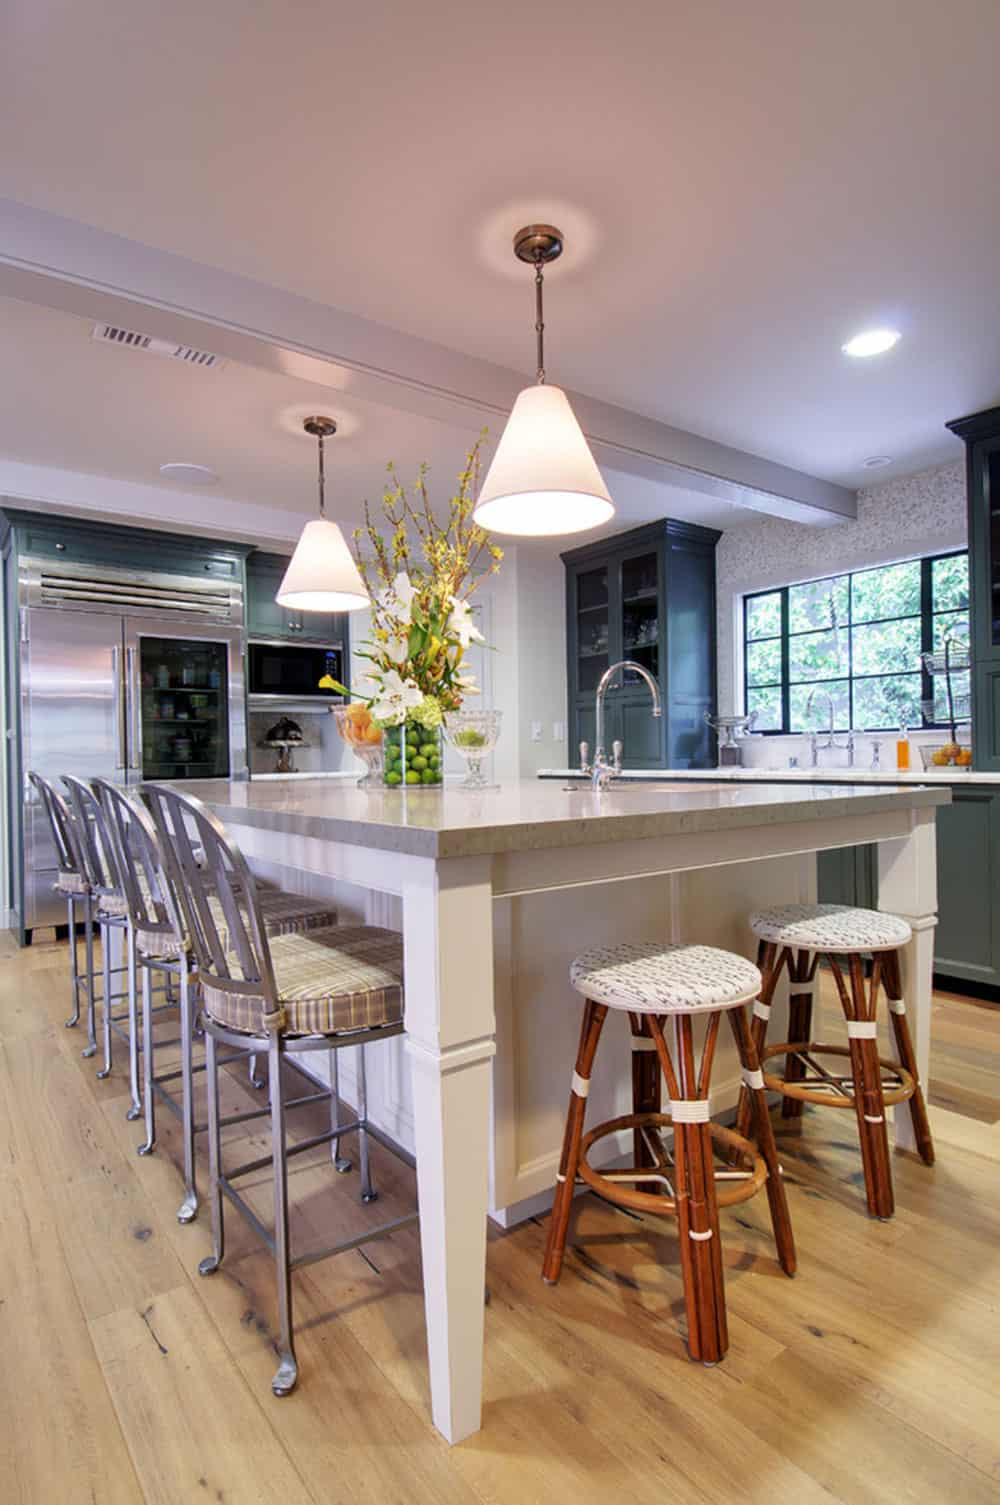 Modern-Kitchen-Island-Designs-With-Seating-7